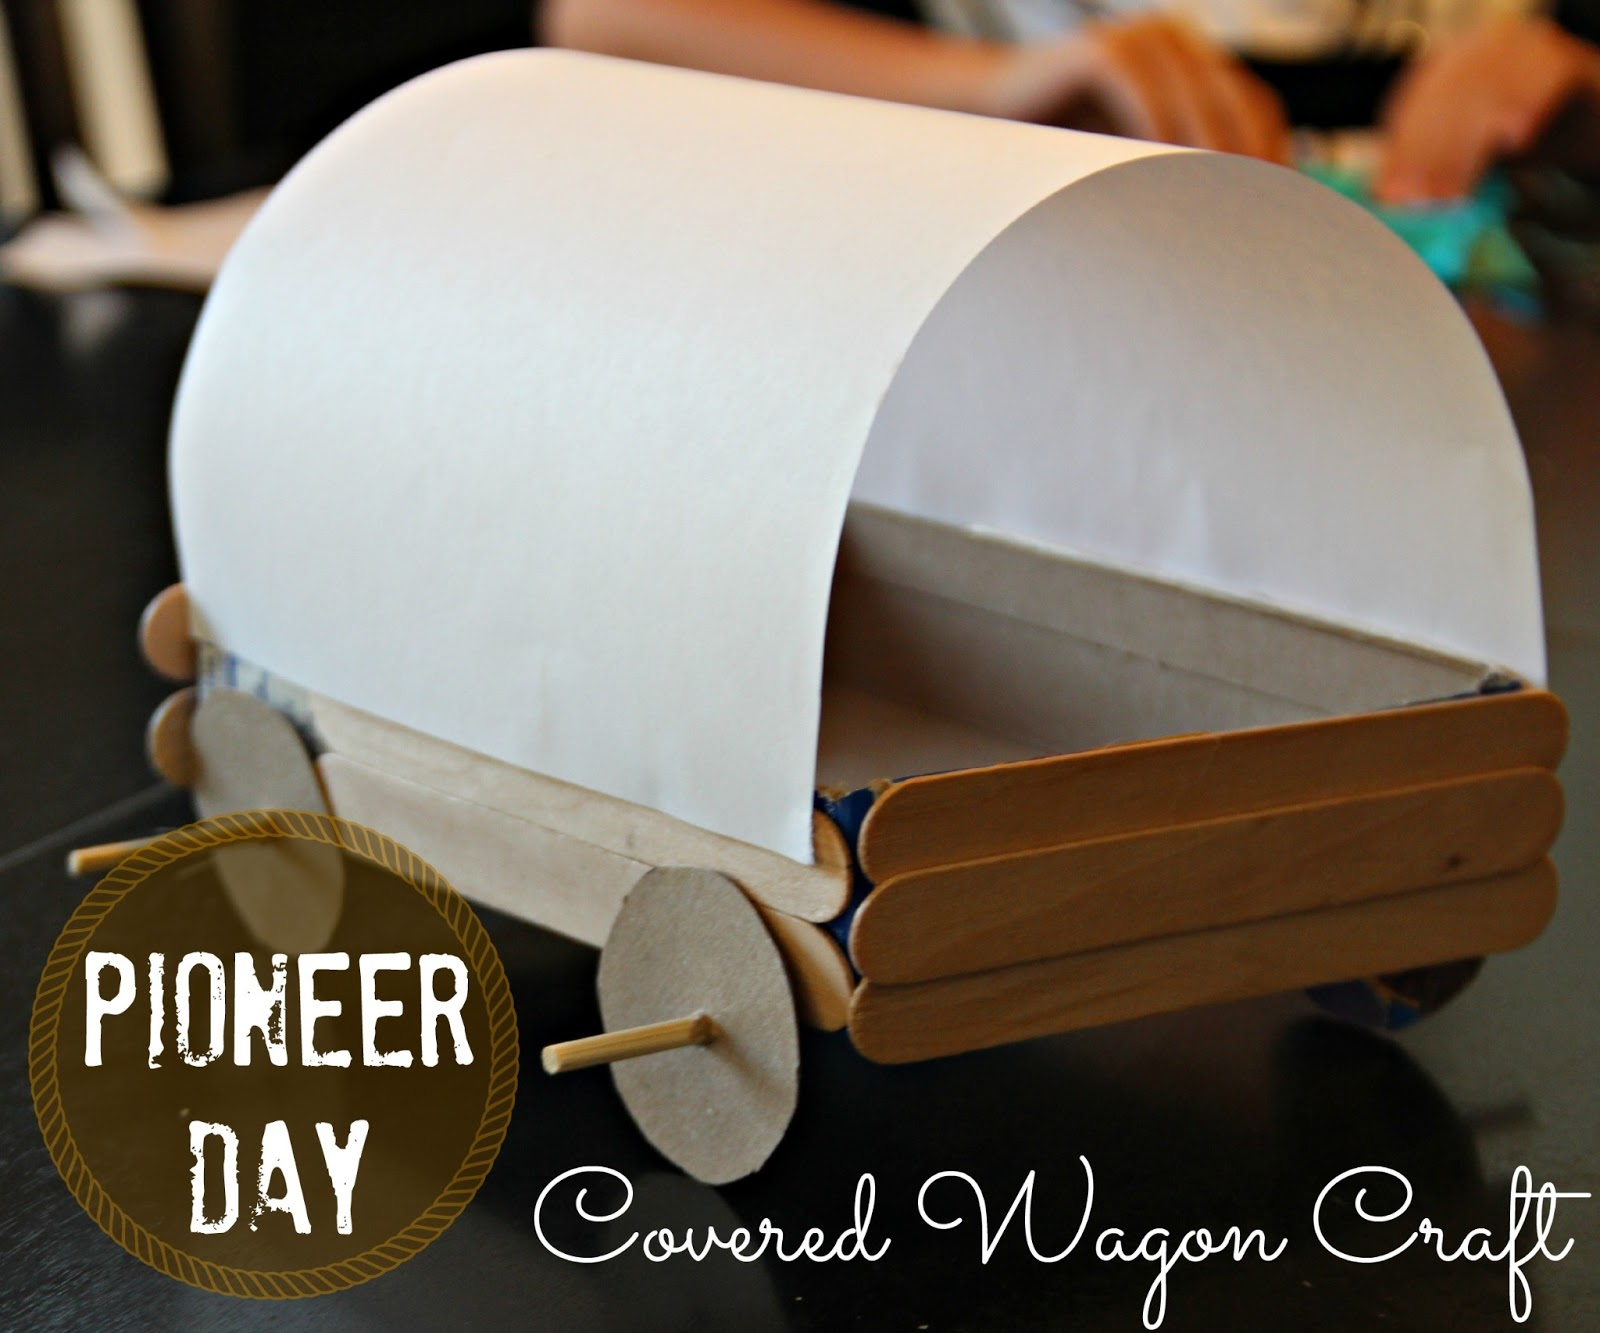 Blue Skies Ahead: Pioneer Day Covered Wagon Craft